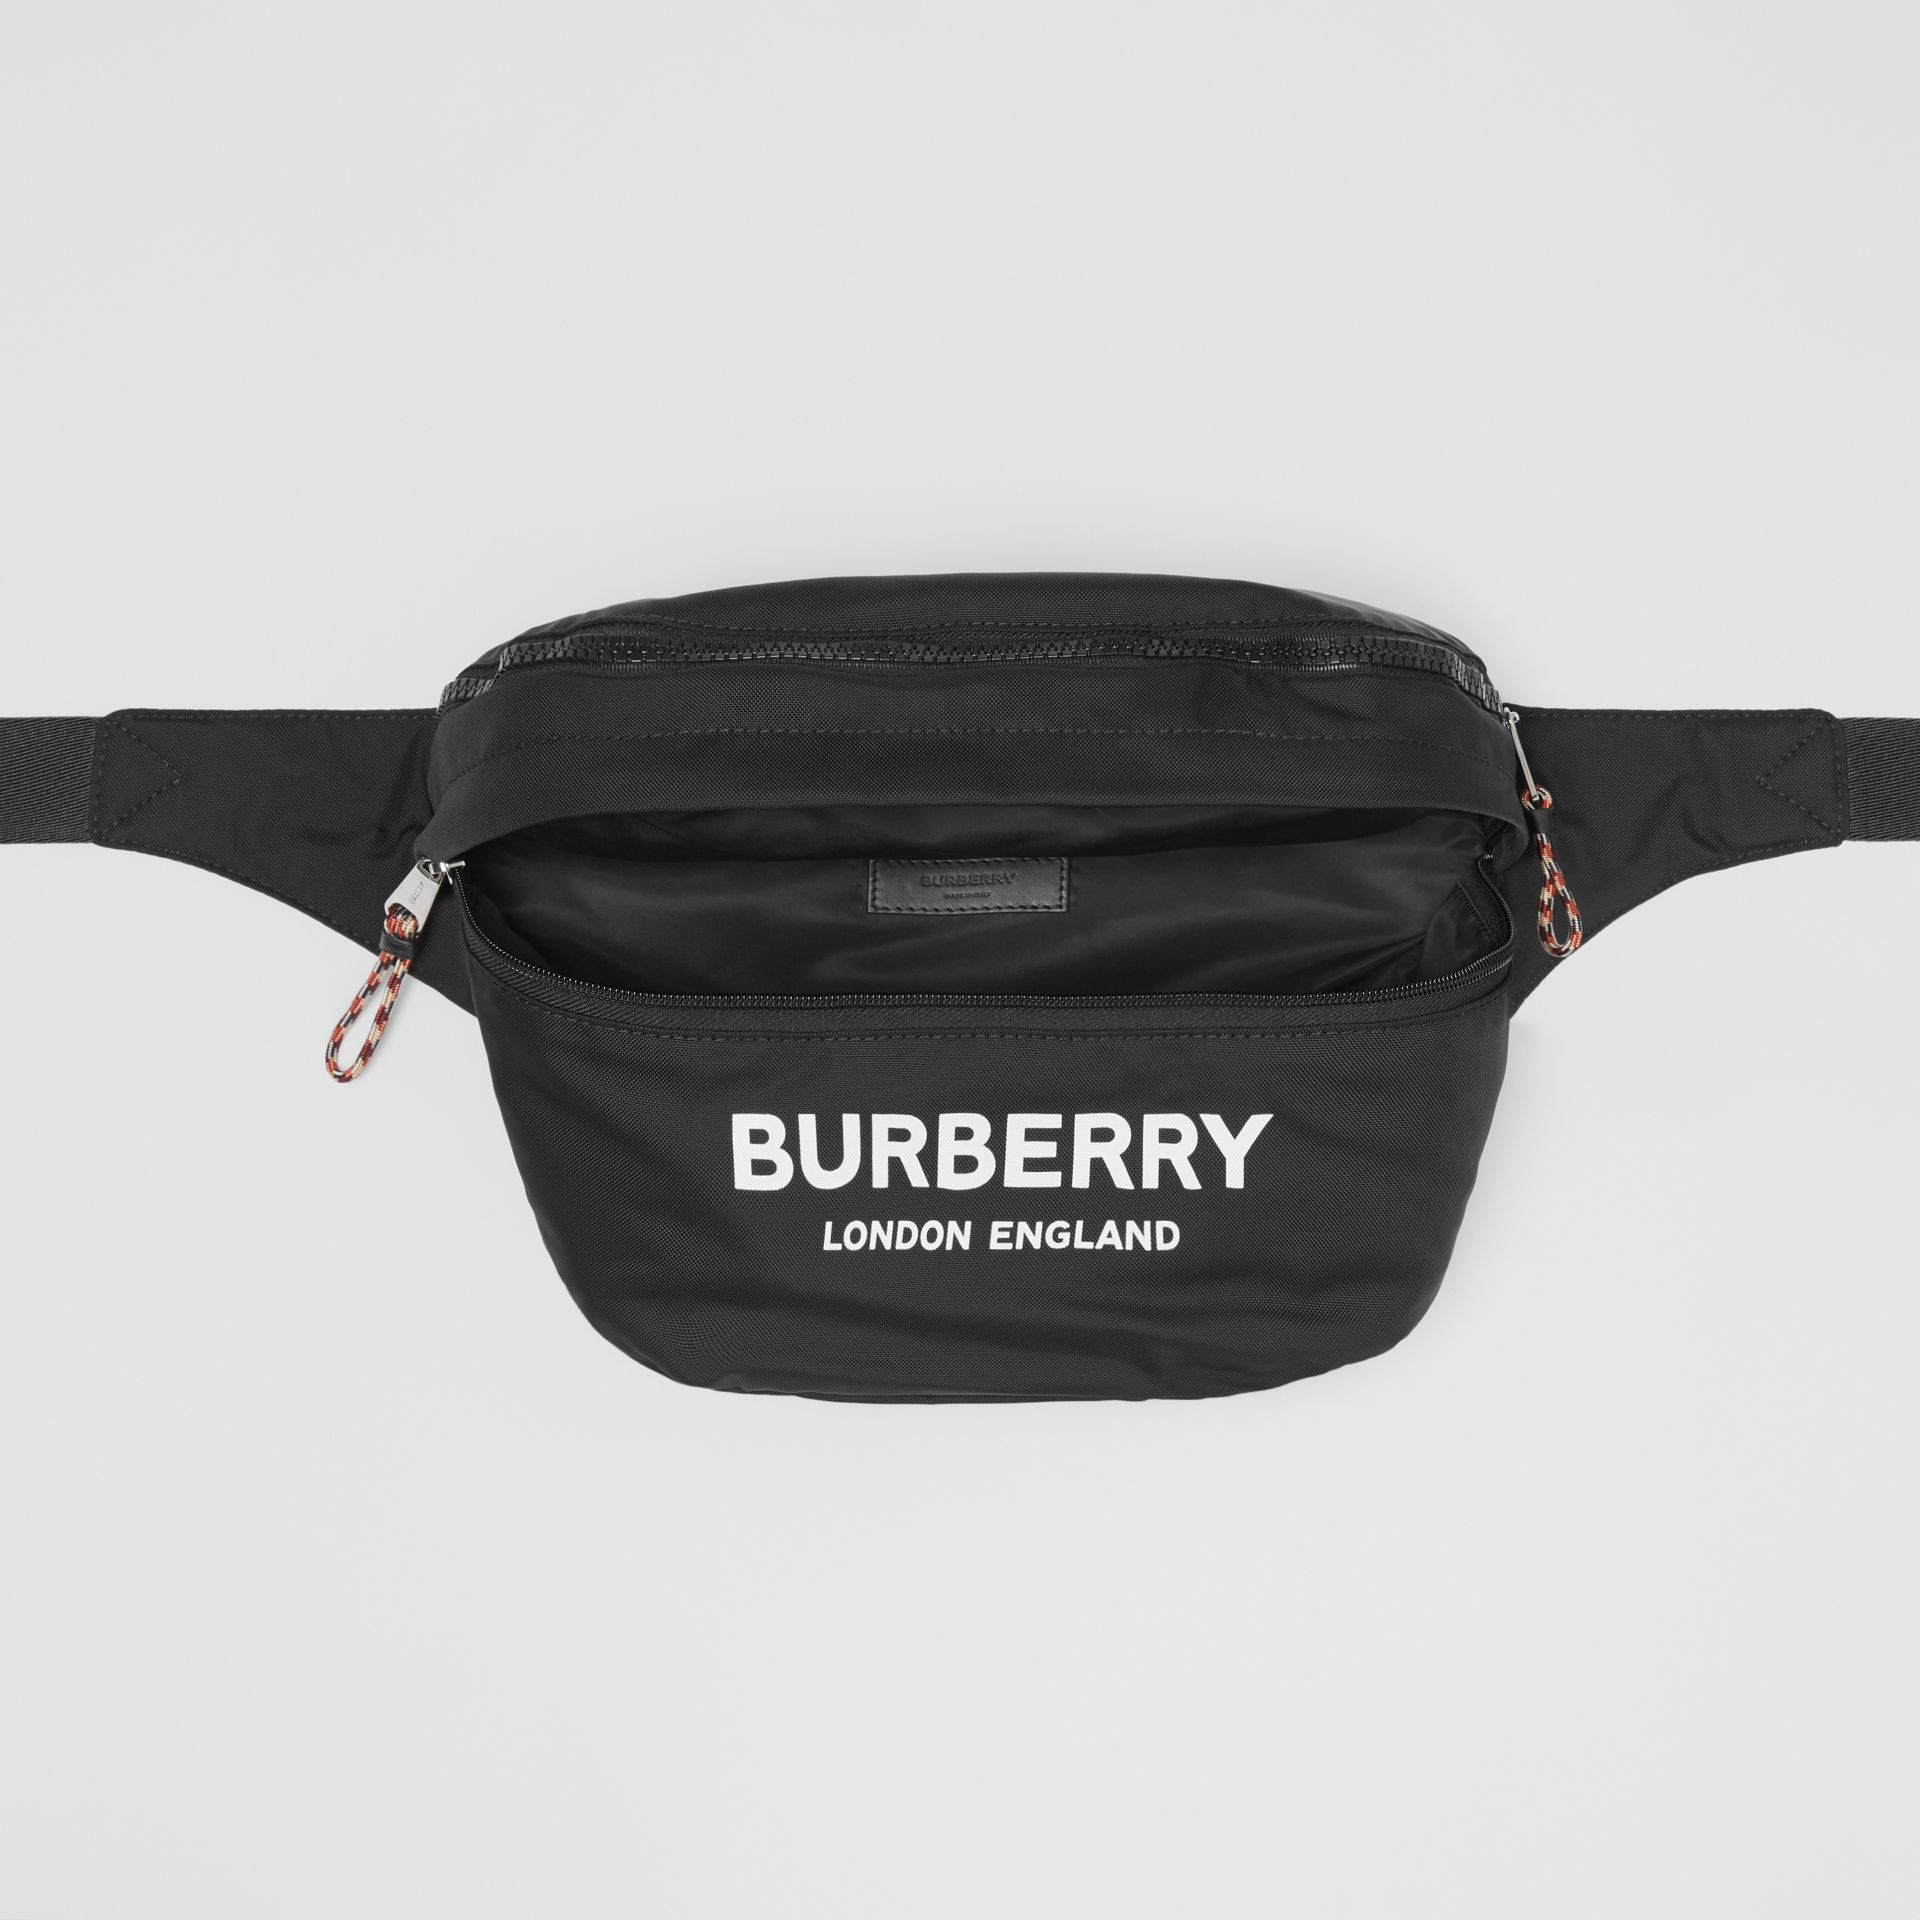 Sac banane convertible avec logo (Noir) | Burberry - photo de la galerie 11